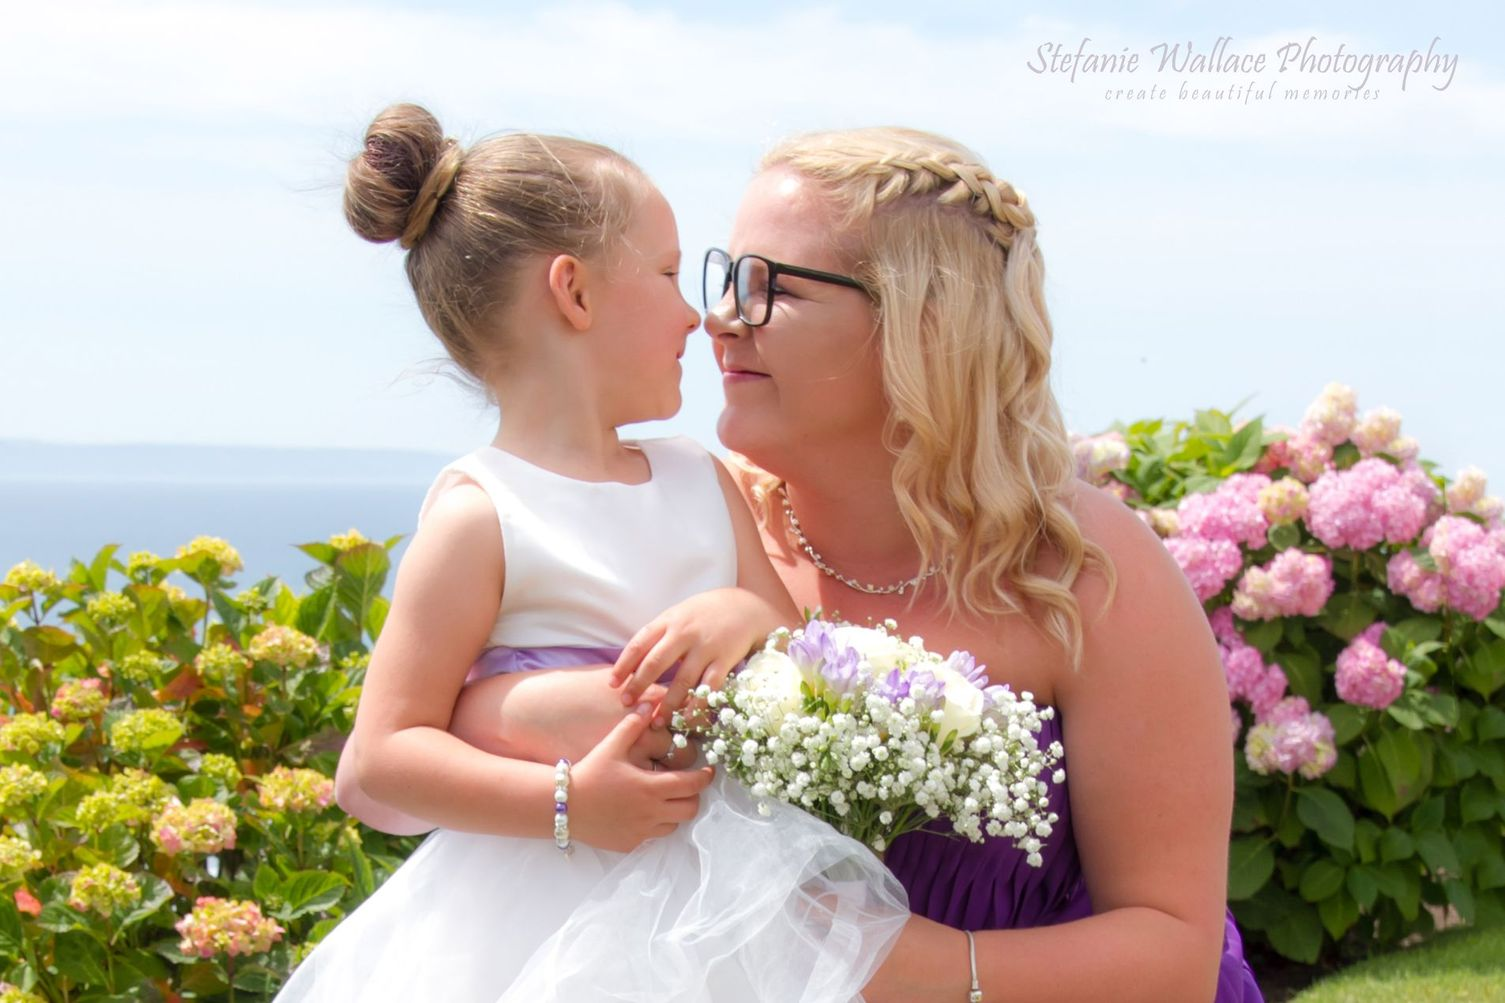 2018 Wedding Couple 45 Stefanie Wallace Photography